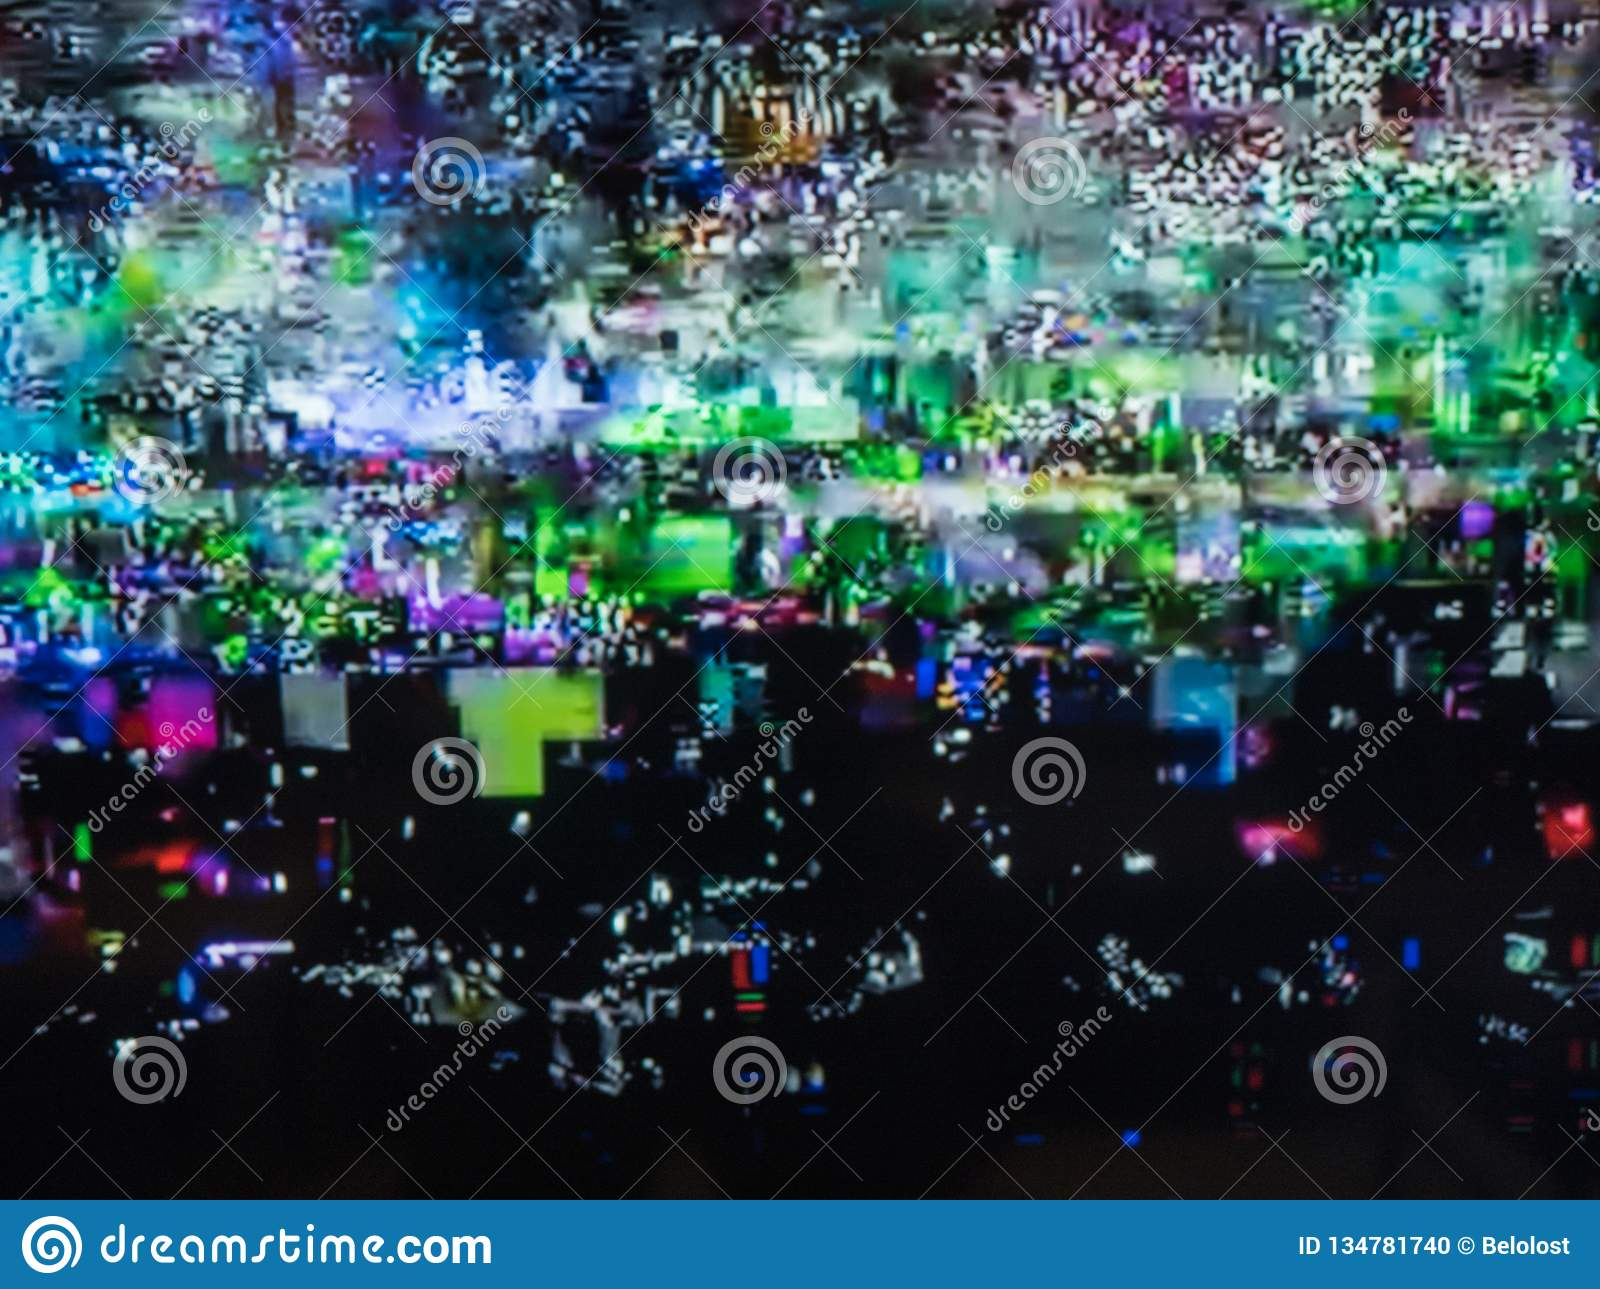 Bad TV signal, television interference, color digital noise. Abstract background